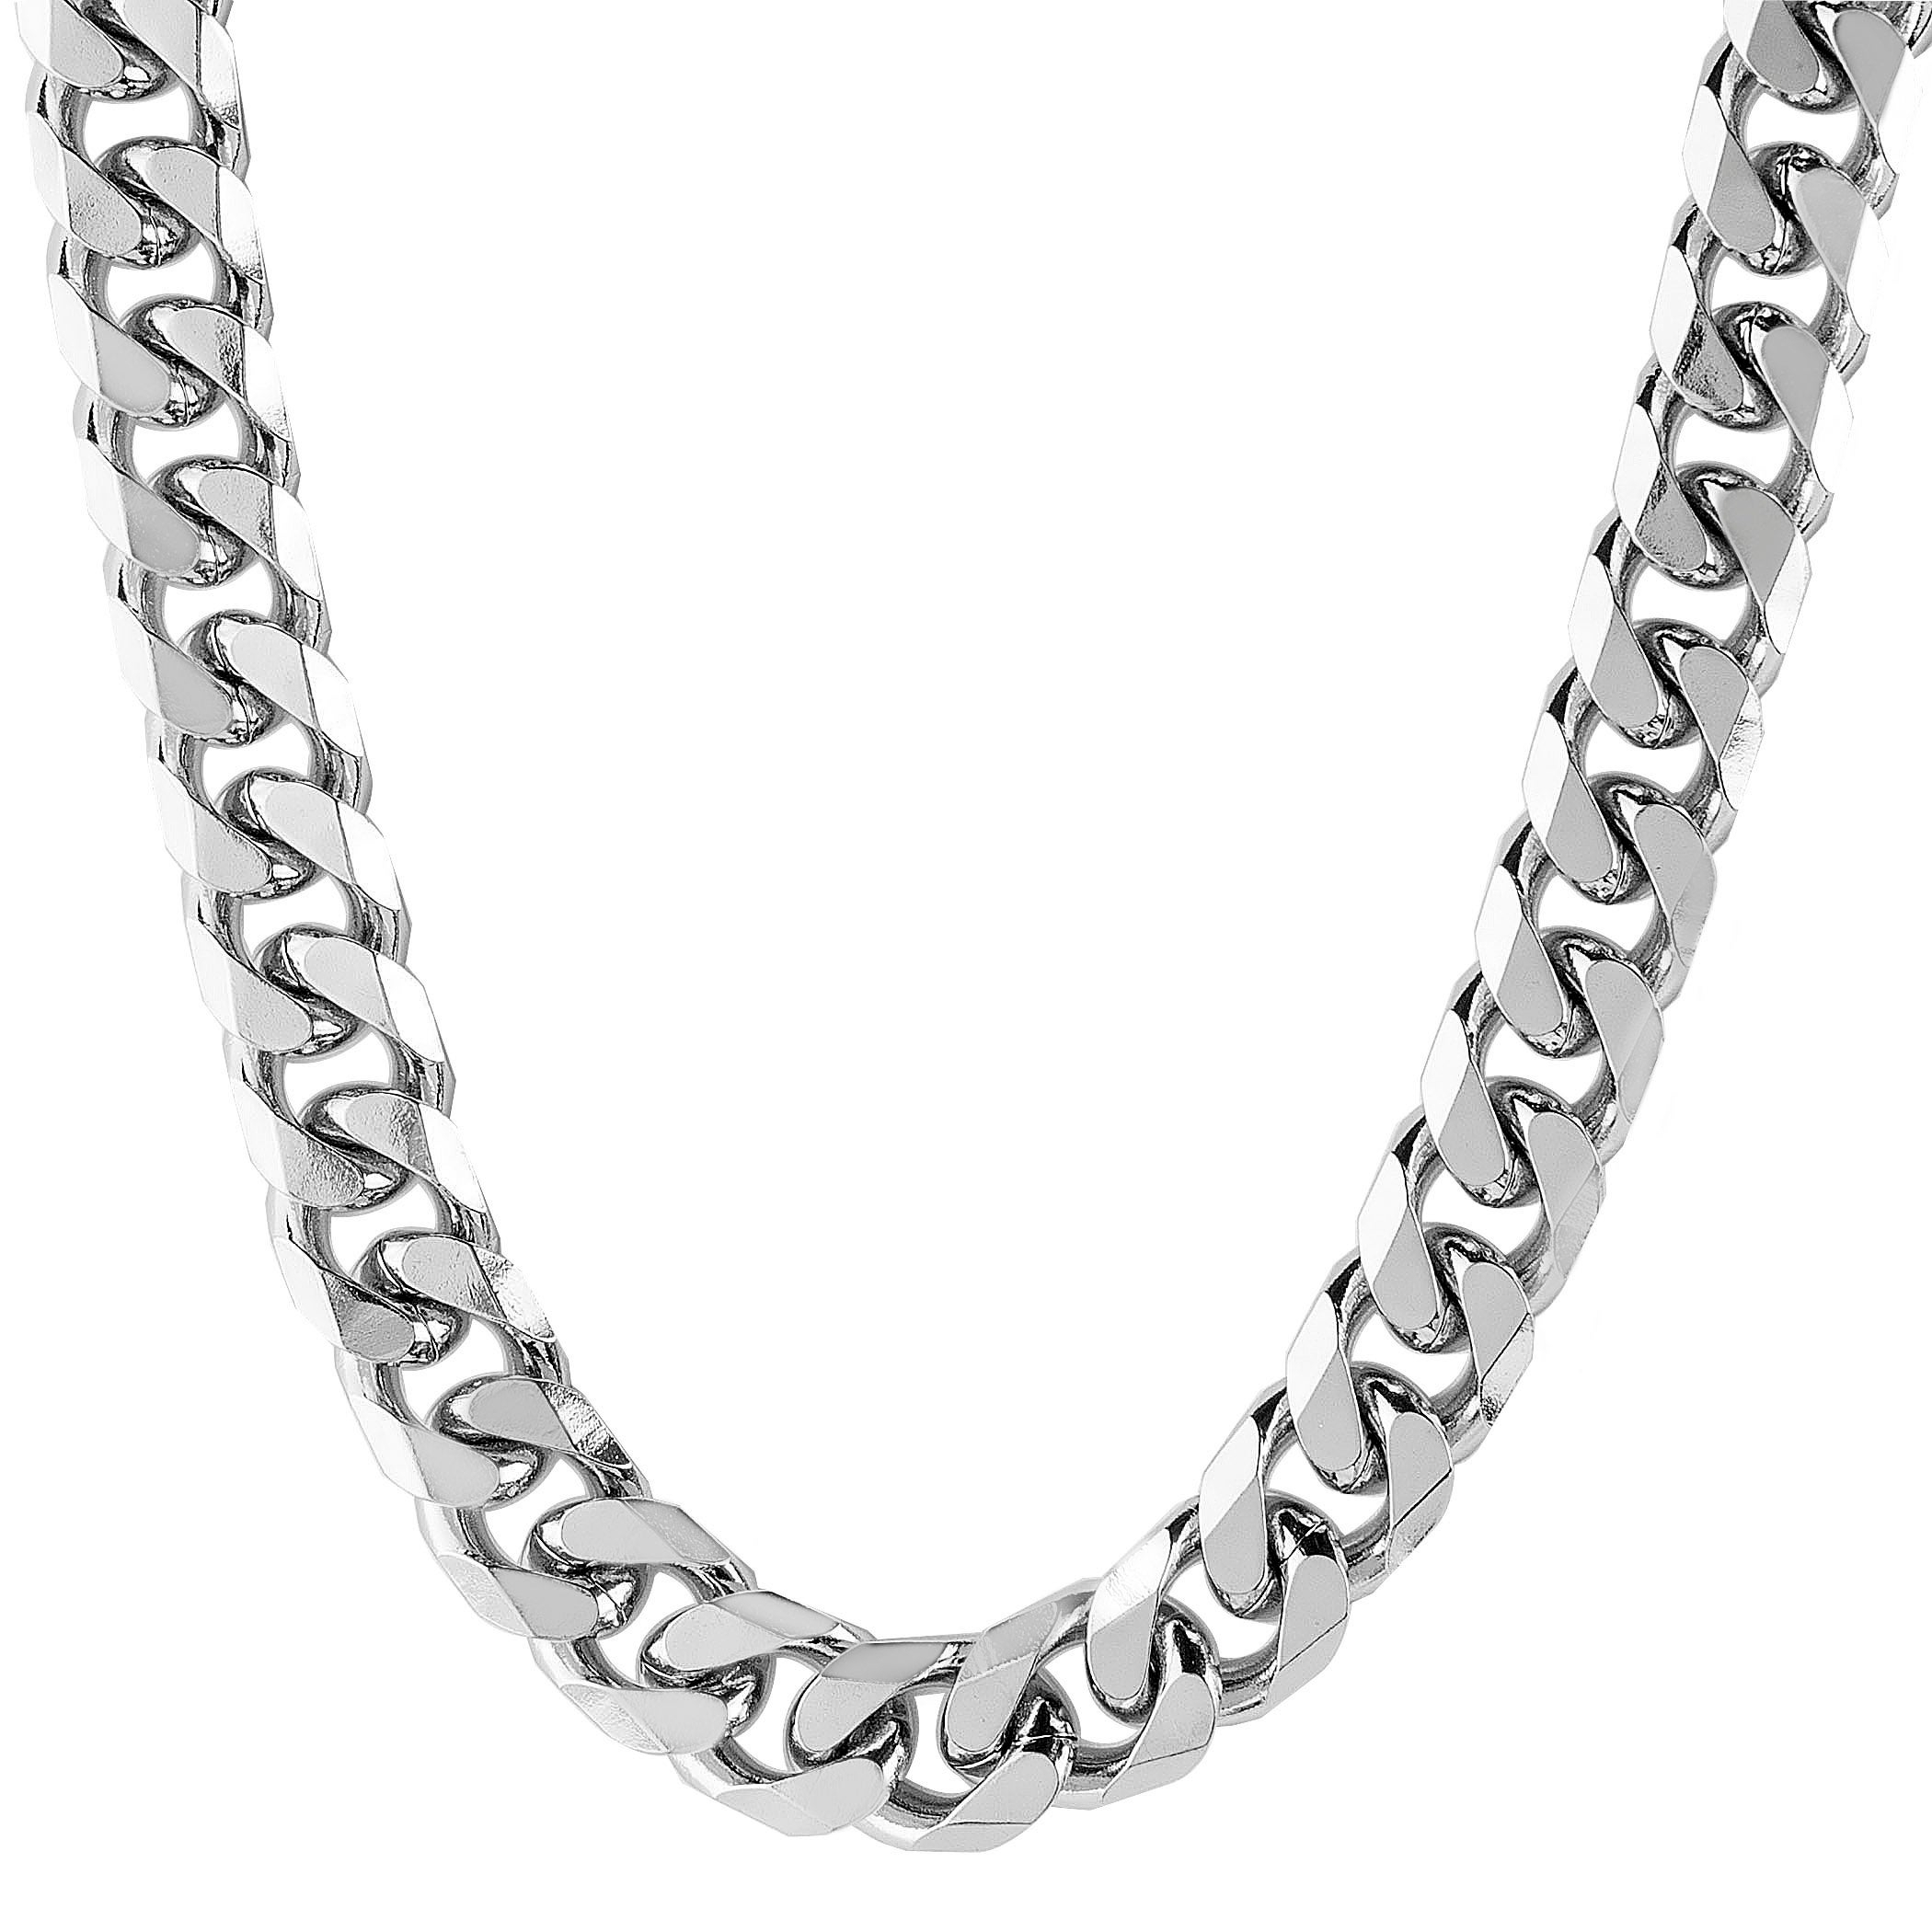 Stainless Steel Beveled Curb Link Chain Necklace (10 Mm) Regarding 2020 Curb Chain Necklaces (View 21 of 25)